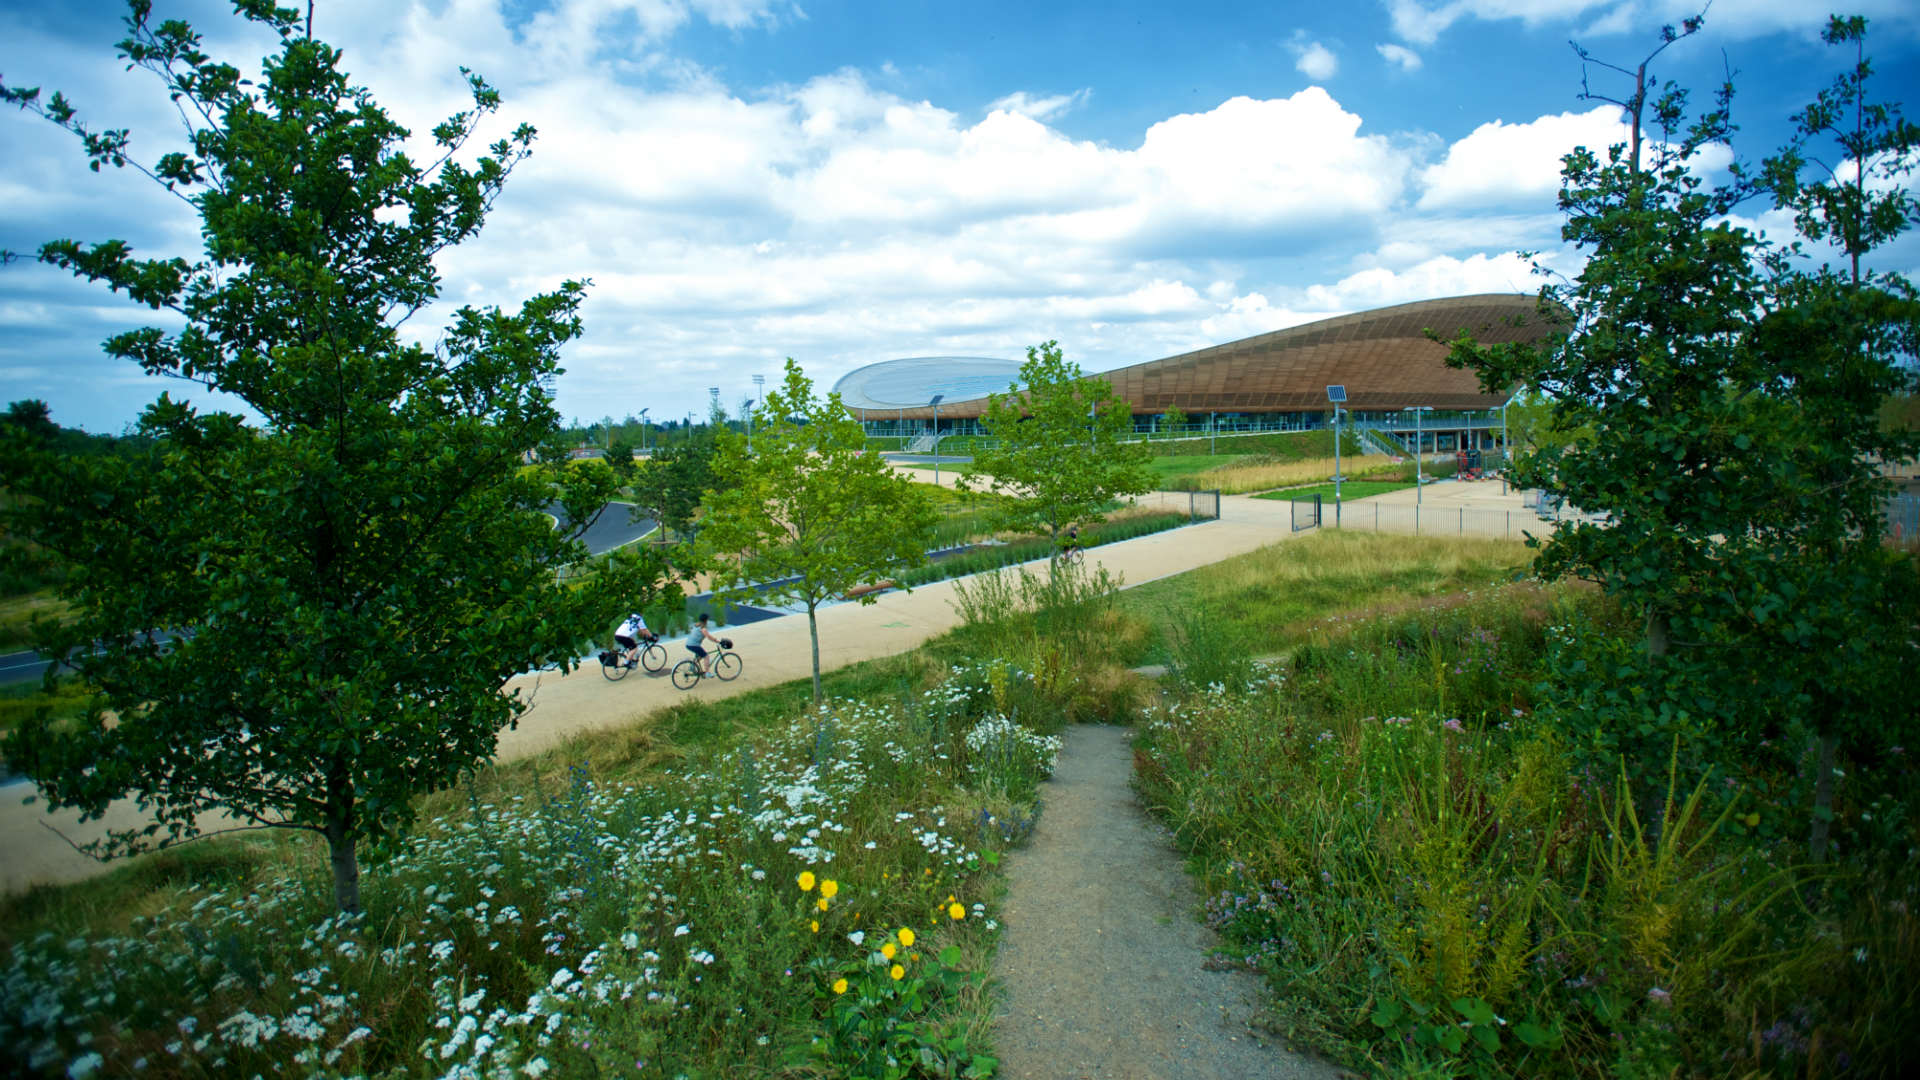 Green grass of Queen Elizabeth Olympic Park with the Velodrome in the background